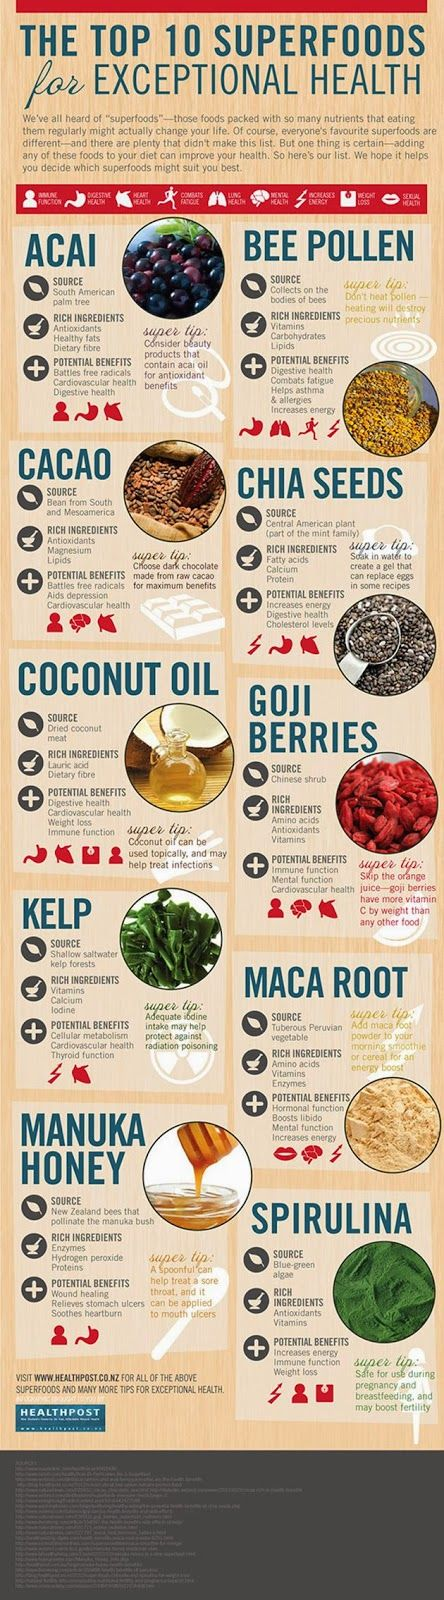 Skinny Diva Diet: Top 10 Superfoods for Exceptional Health [Infographic]